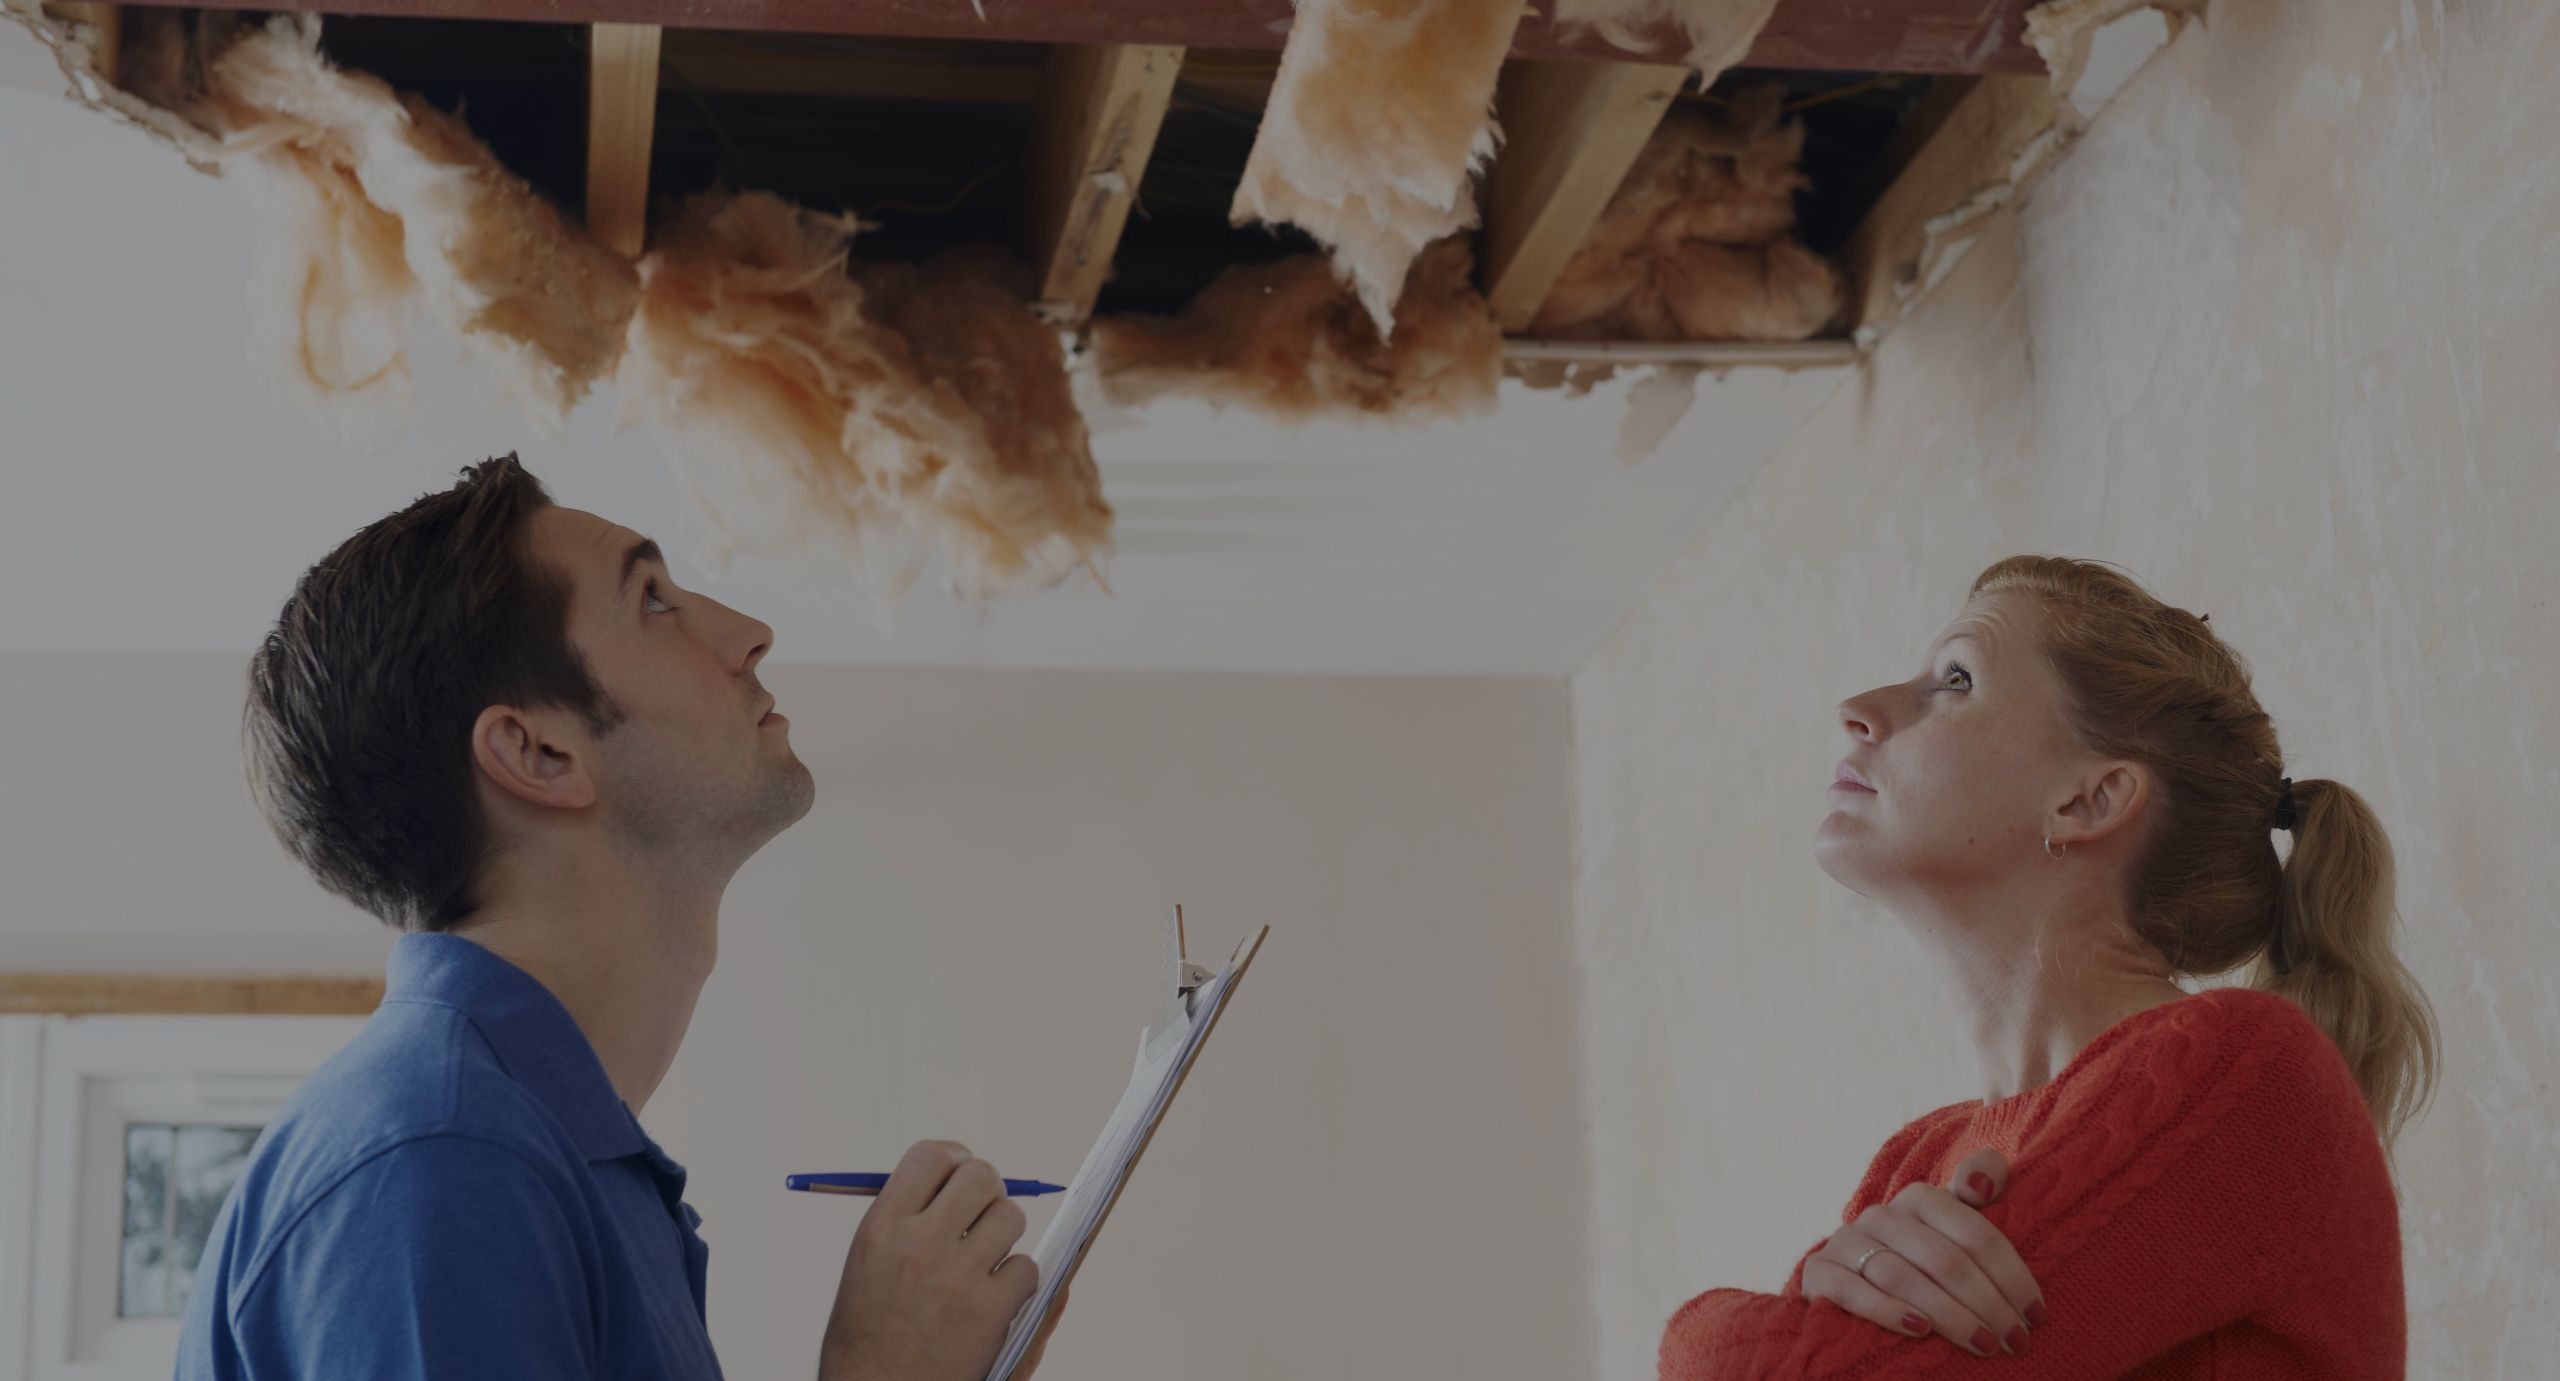 How a Home Inspection Works When it's YOUR House in the Hot Seat